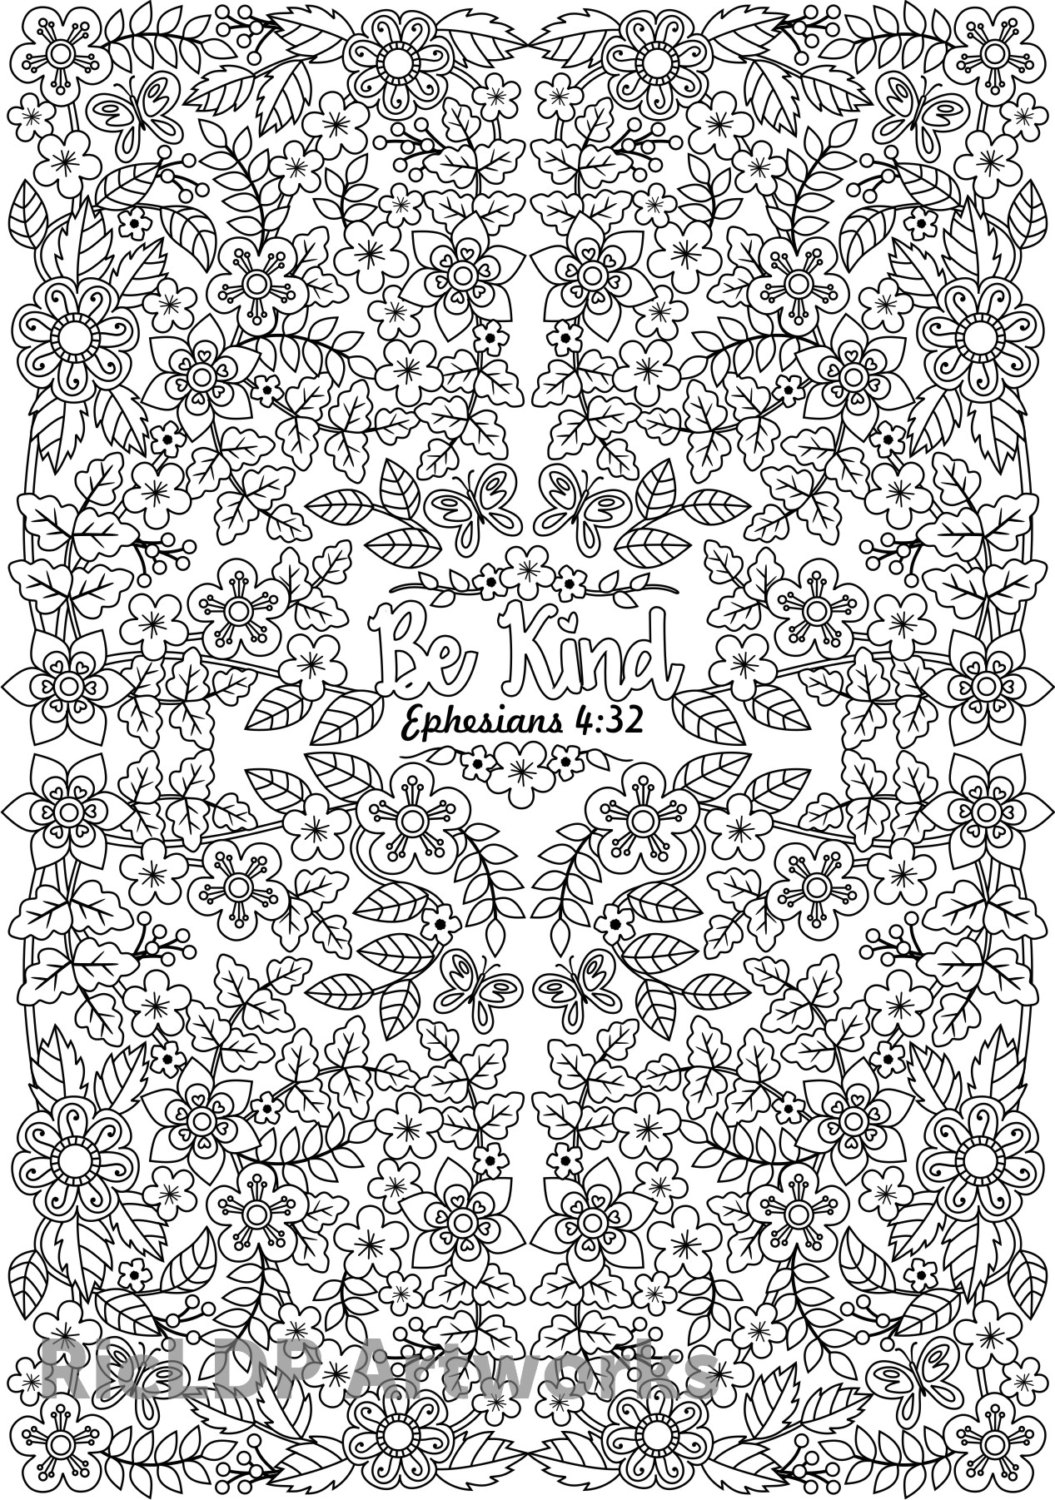 bible verse coloring pages for adults - three bible verse coloring pages for